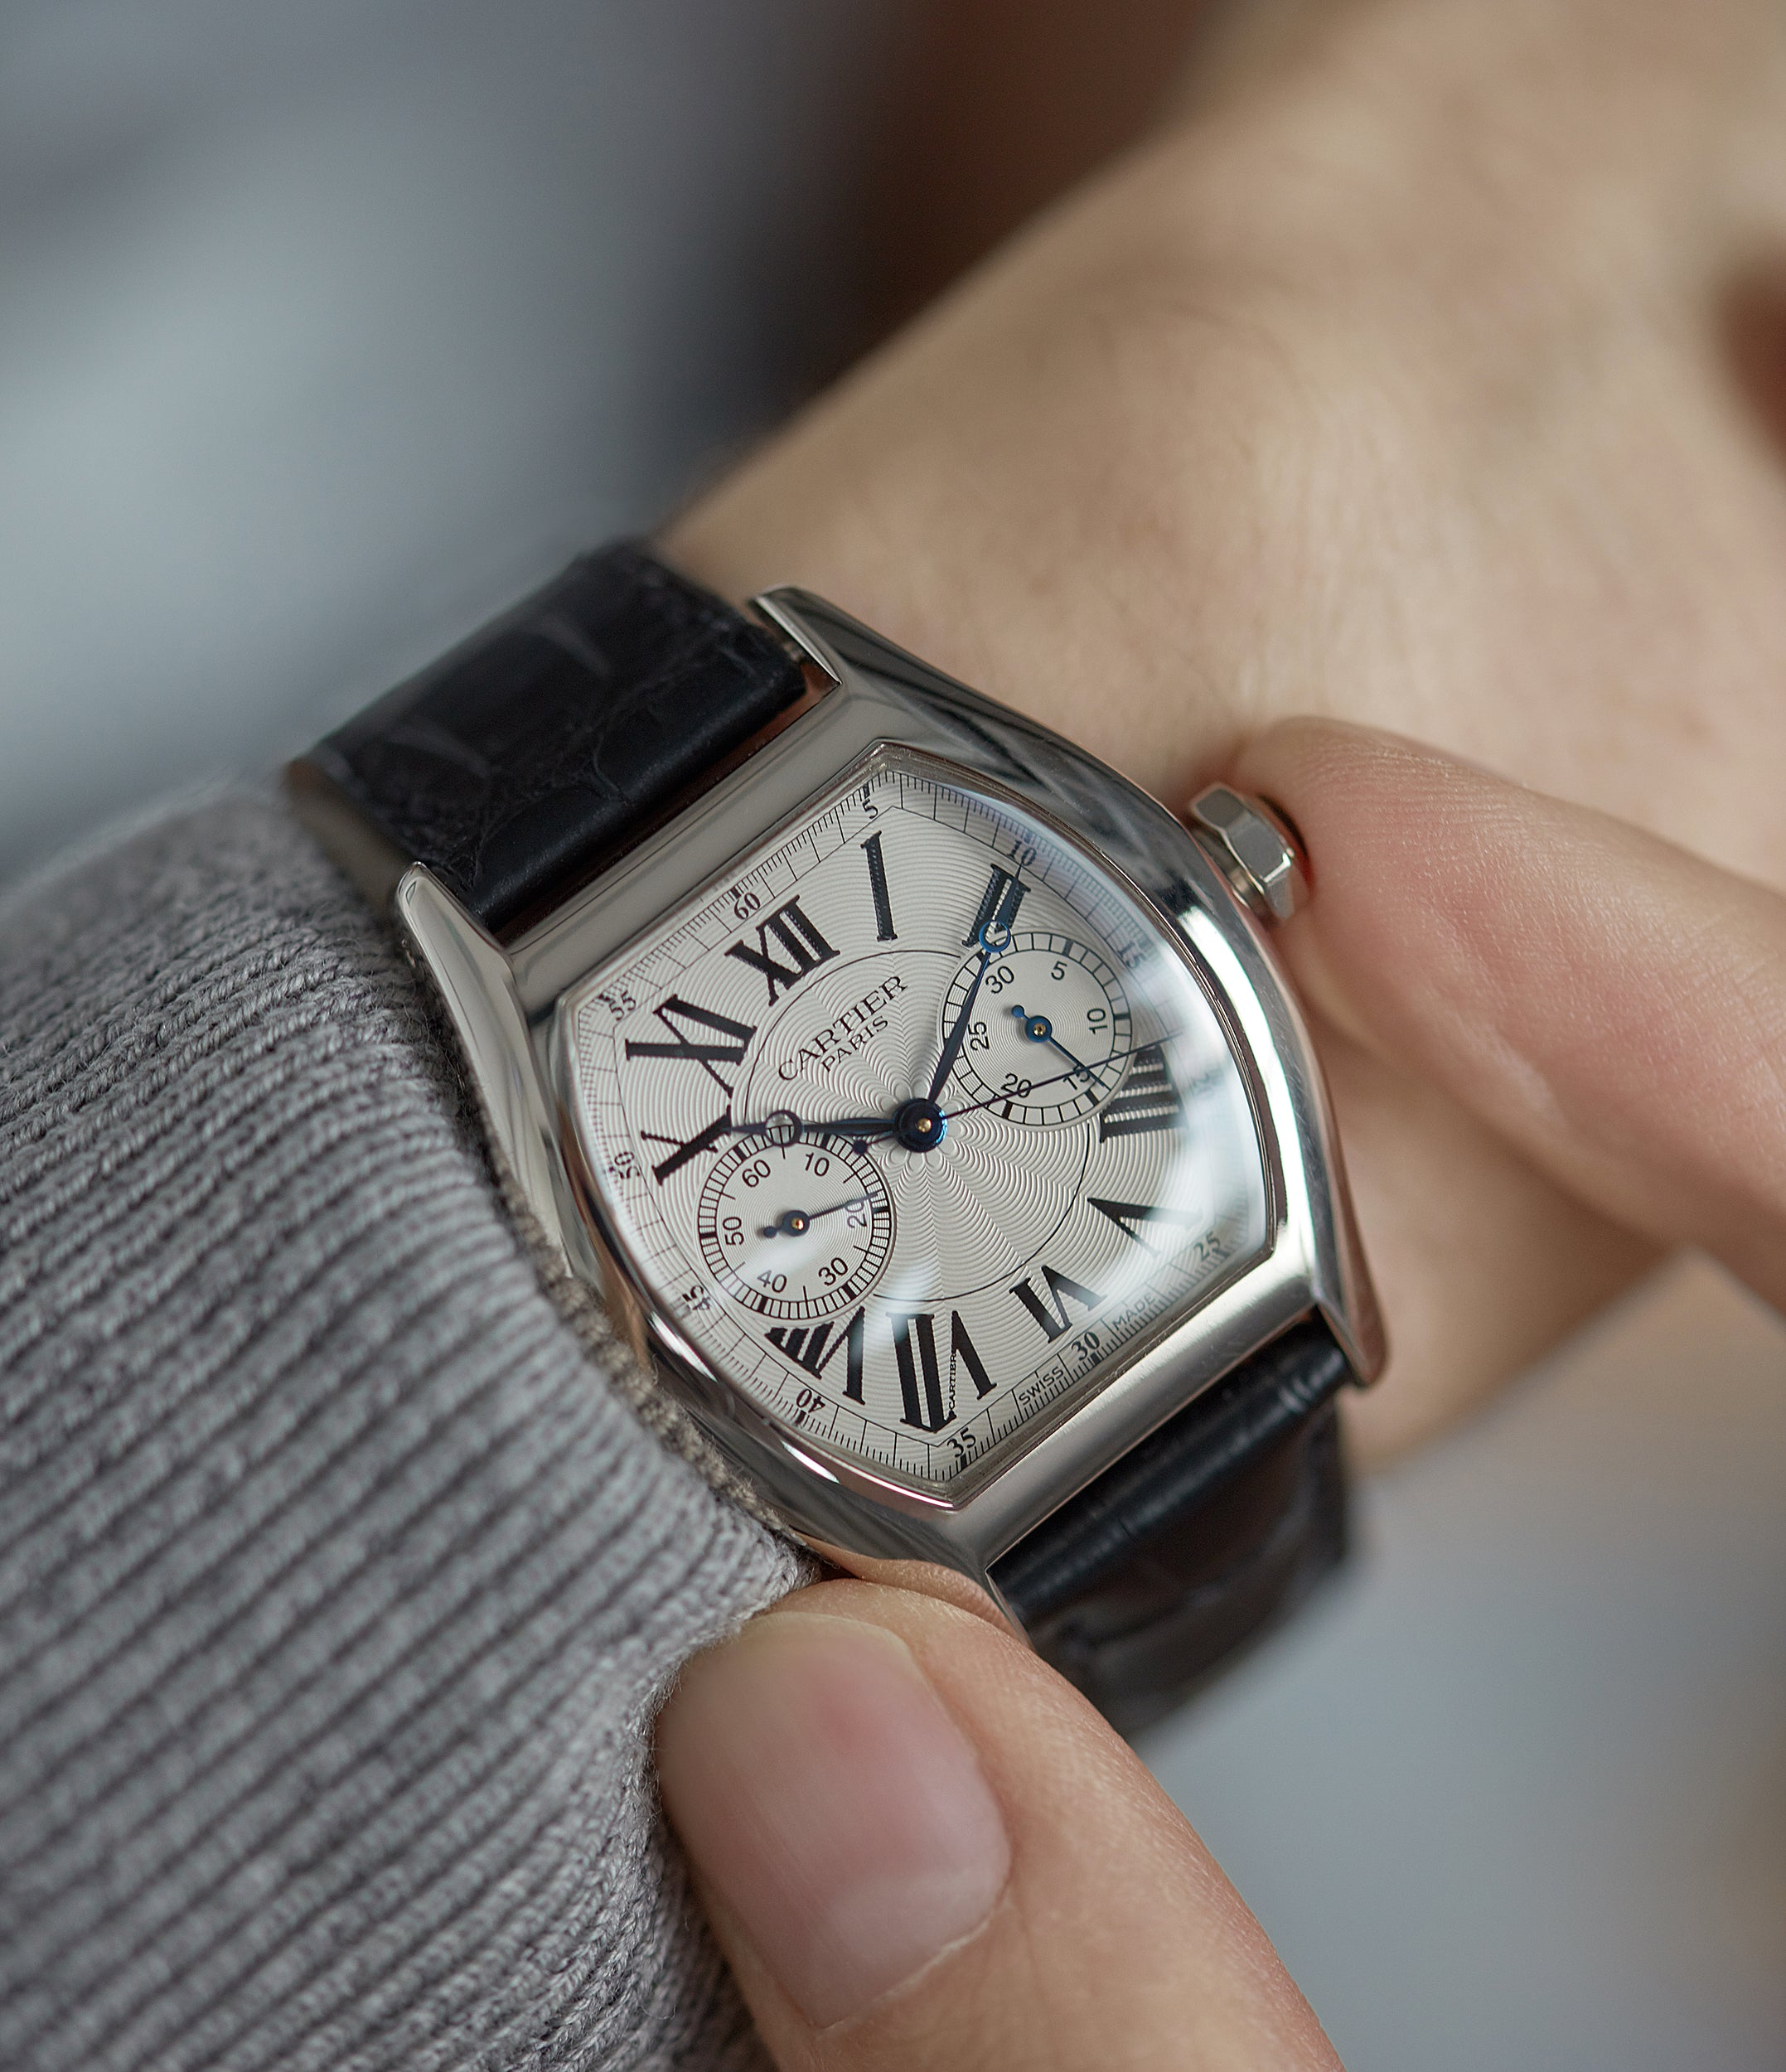 Cartier Monopusher Monopoussoir Ref. 2714 white gold rare dress watch for sale online at A Collected Man London UK specialist of rare watches